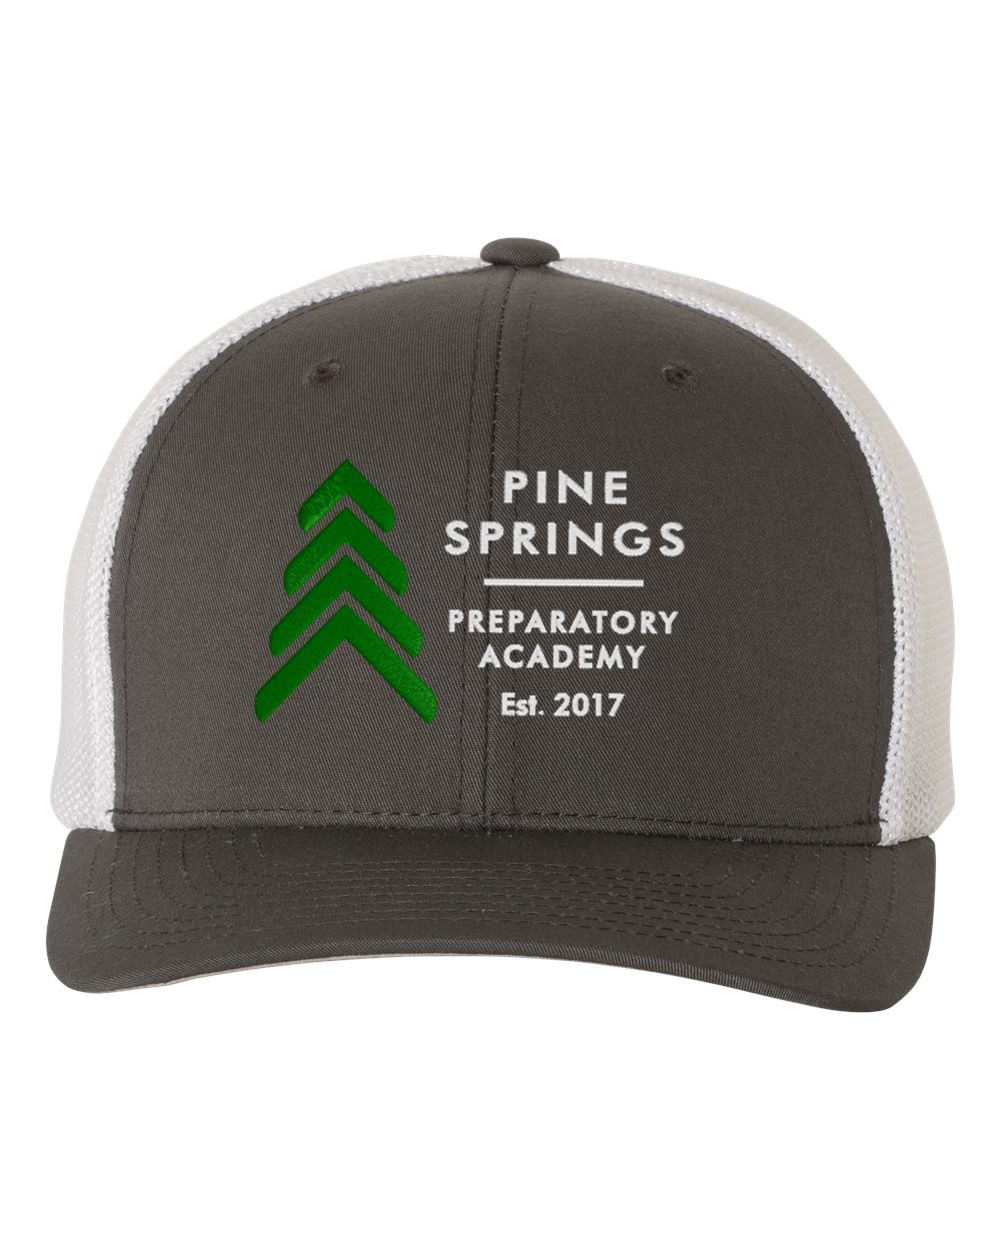 Pine Springs Embroidered Trucker Caps